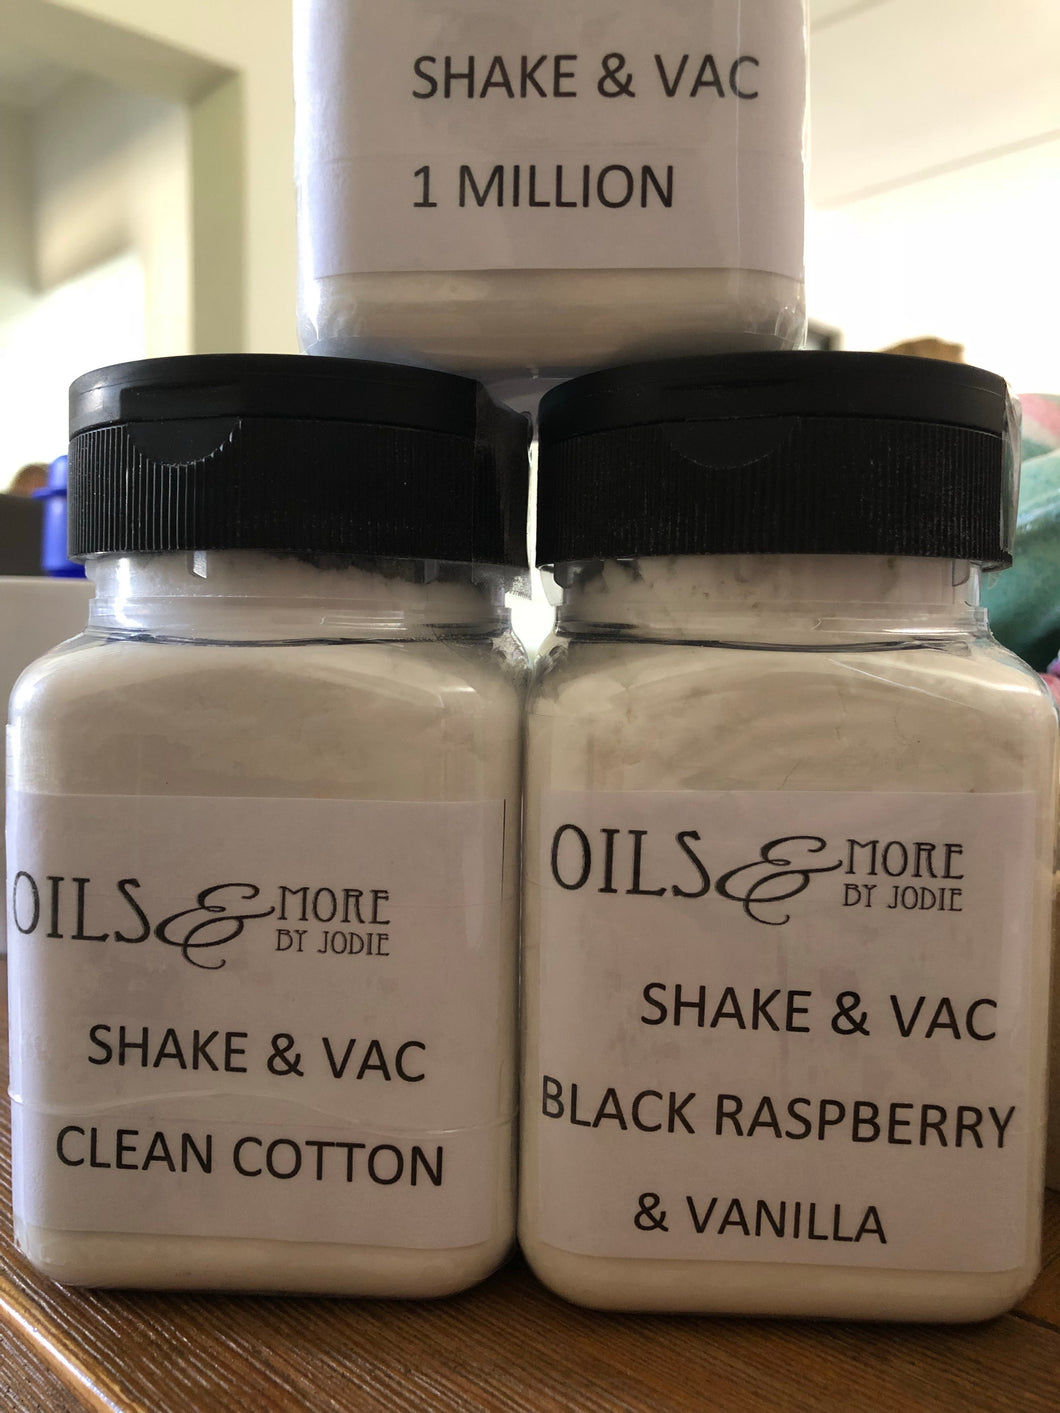 Shake & Vac - Oils & More By Jodie